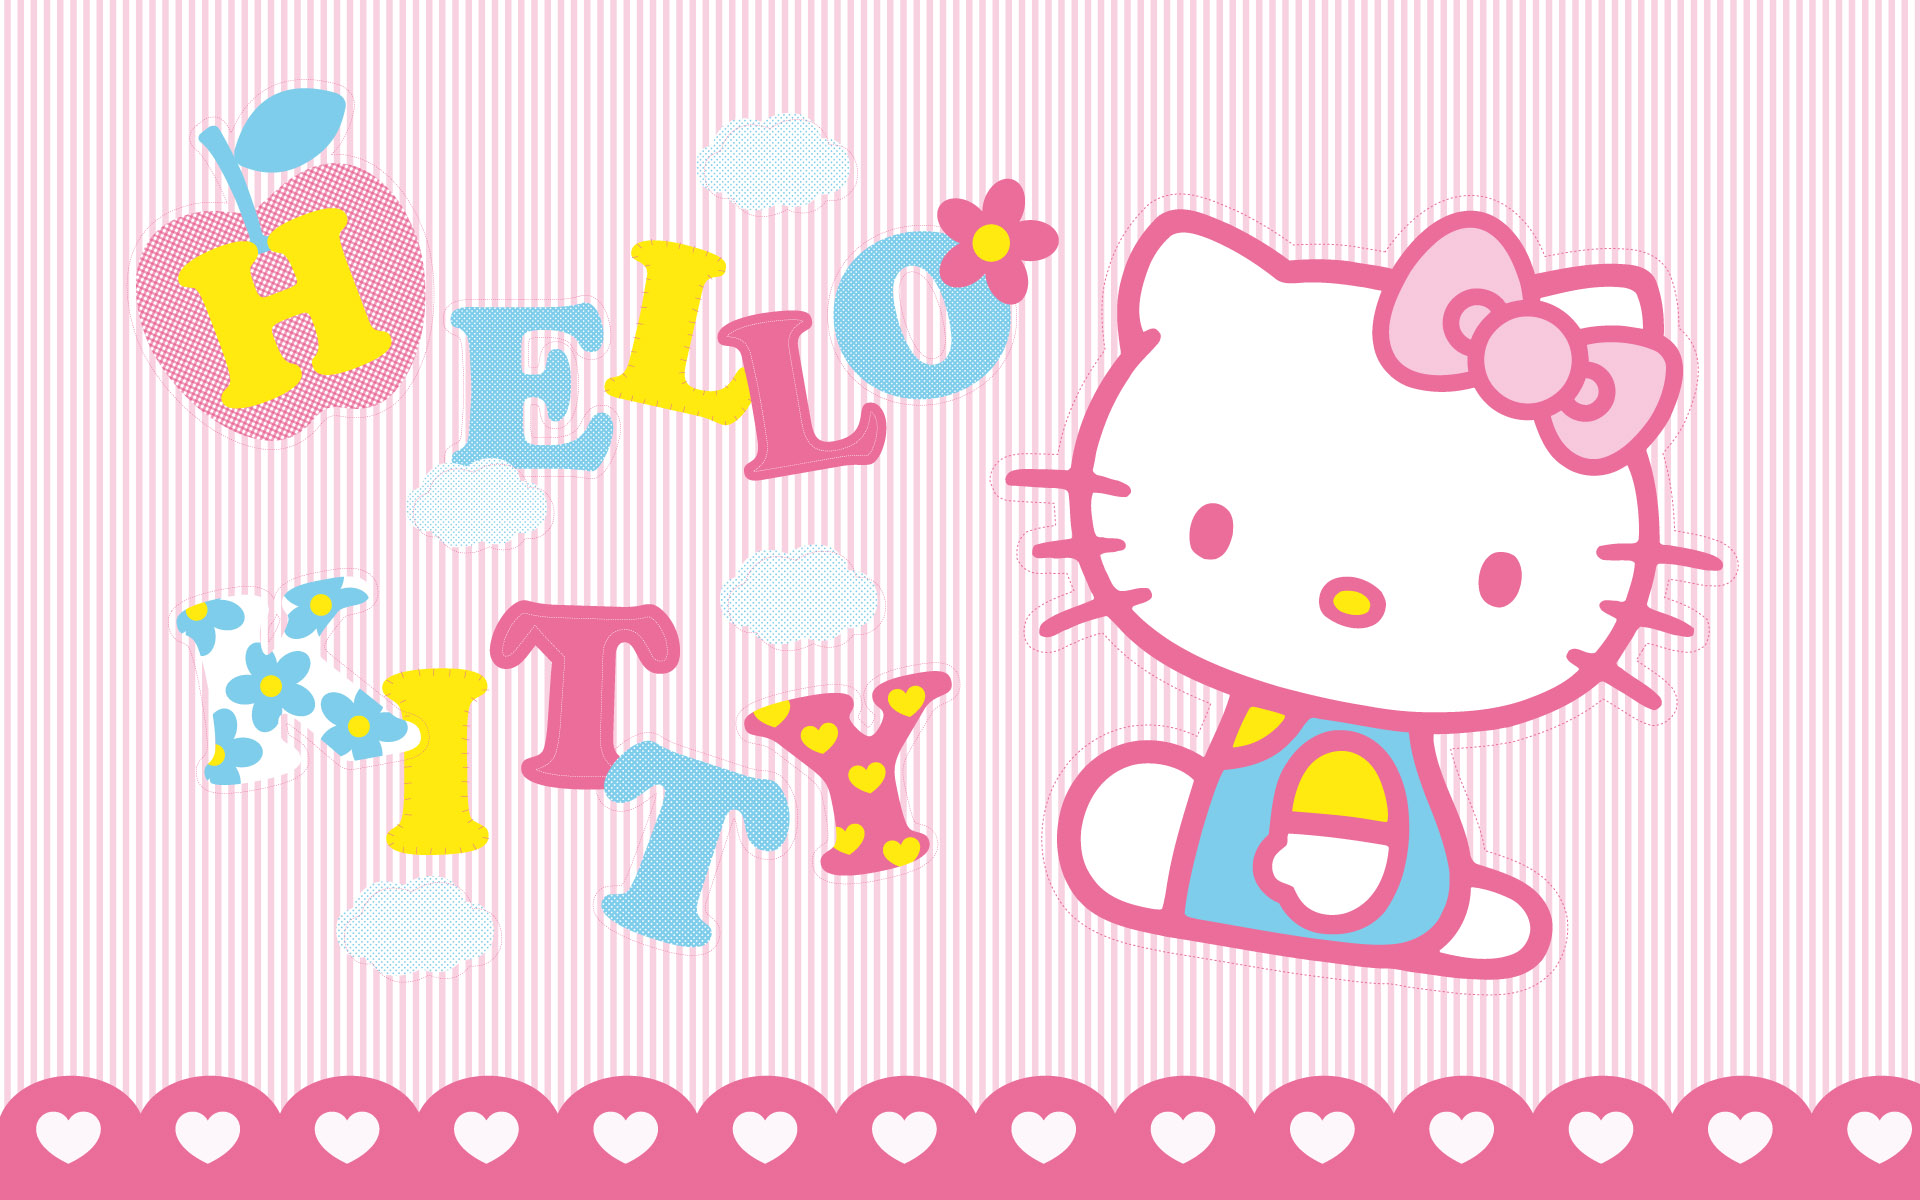 Cute Hello Kitty Wallpaper Full HD Wallpaper with 1920x1200 Resolution 1920x1200